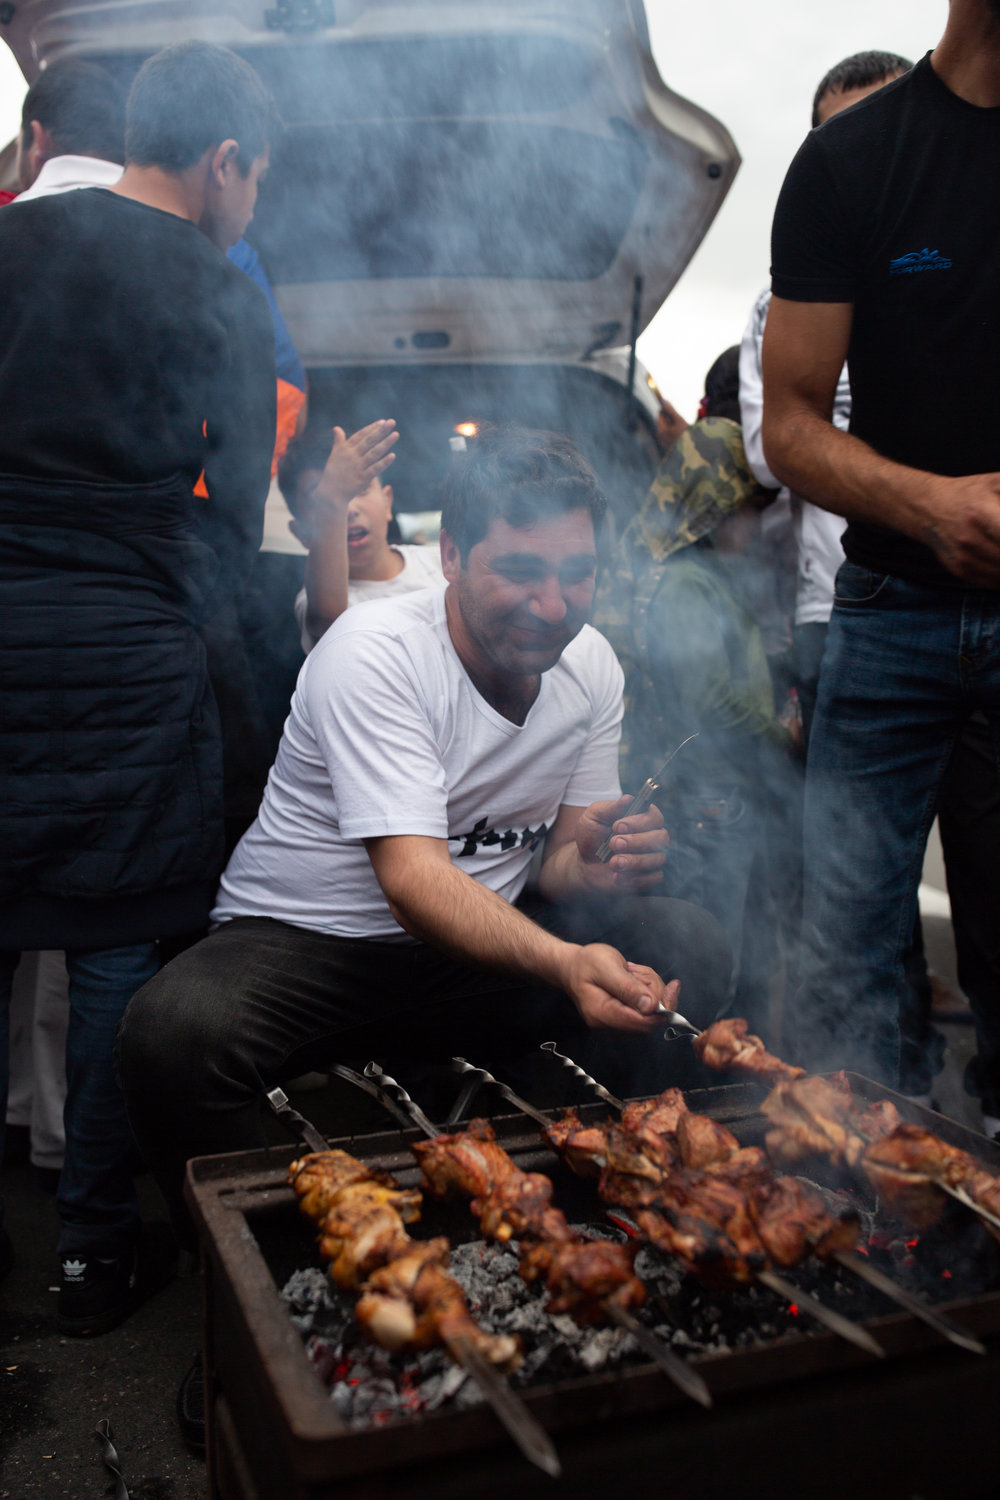 Cooking Khorovats in Republic Square